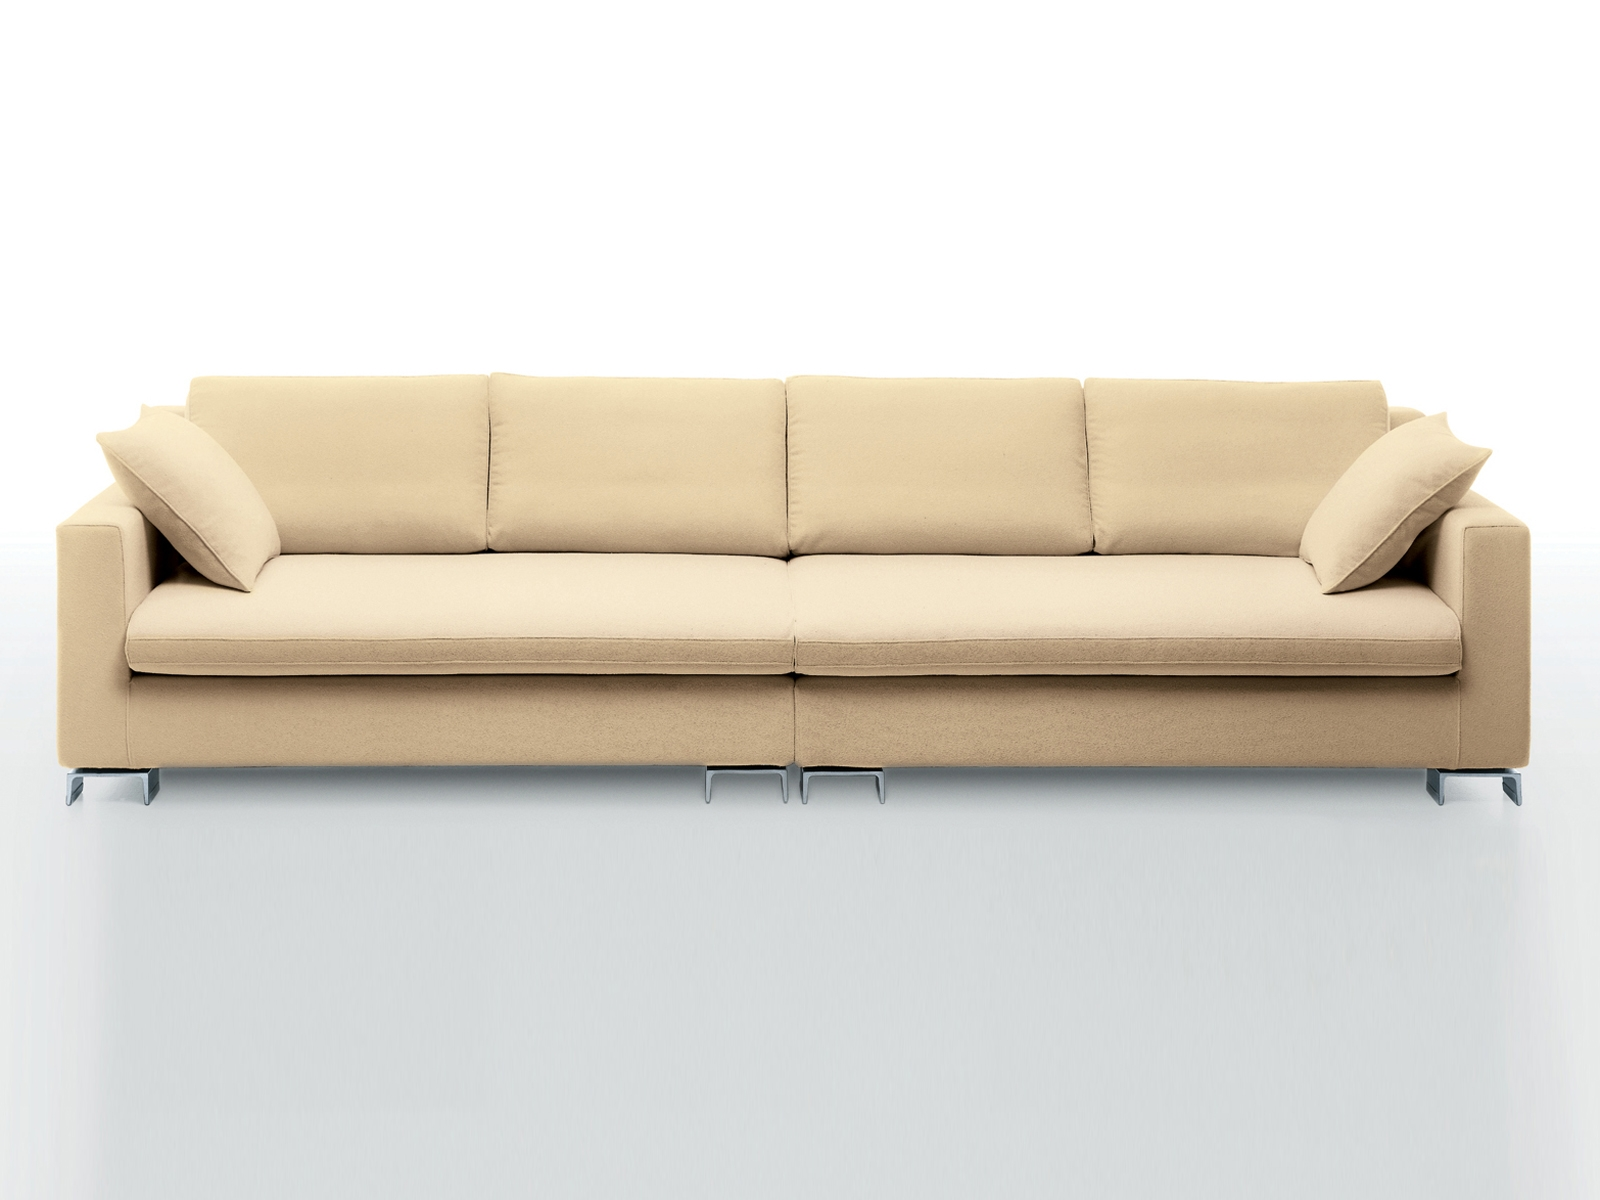 Design 4 Seater Sofas Archiproducts Throughout 4 Seat Sofas (Image 8 of 15)